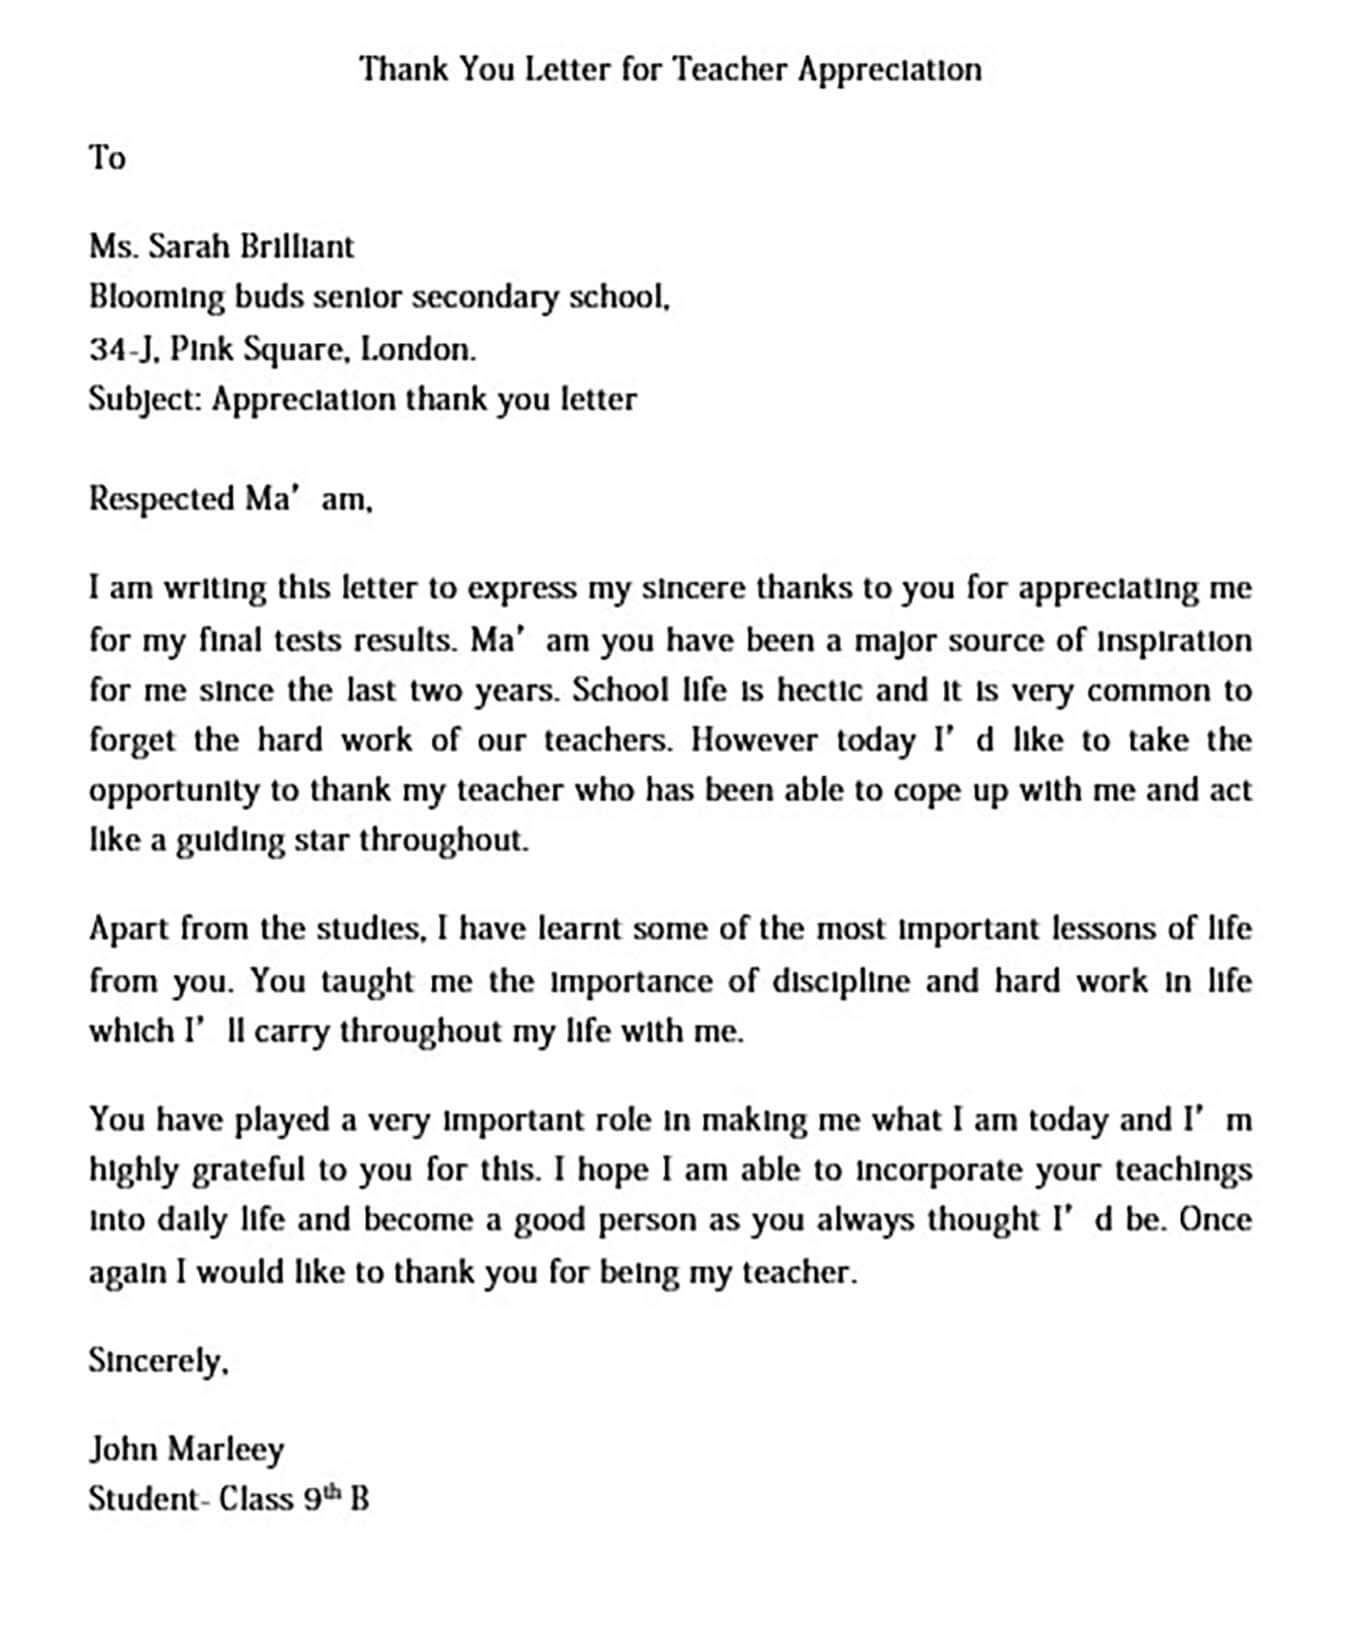 Thank You Letter for Teacher Appreciation